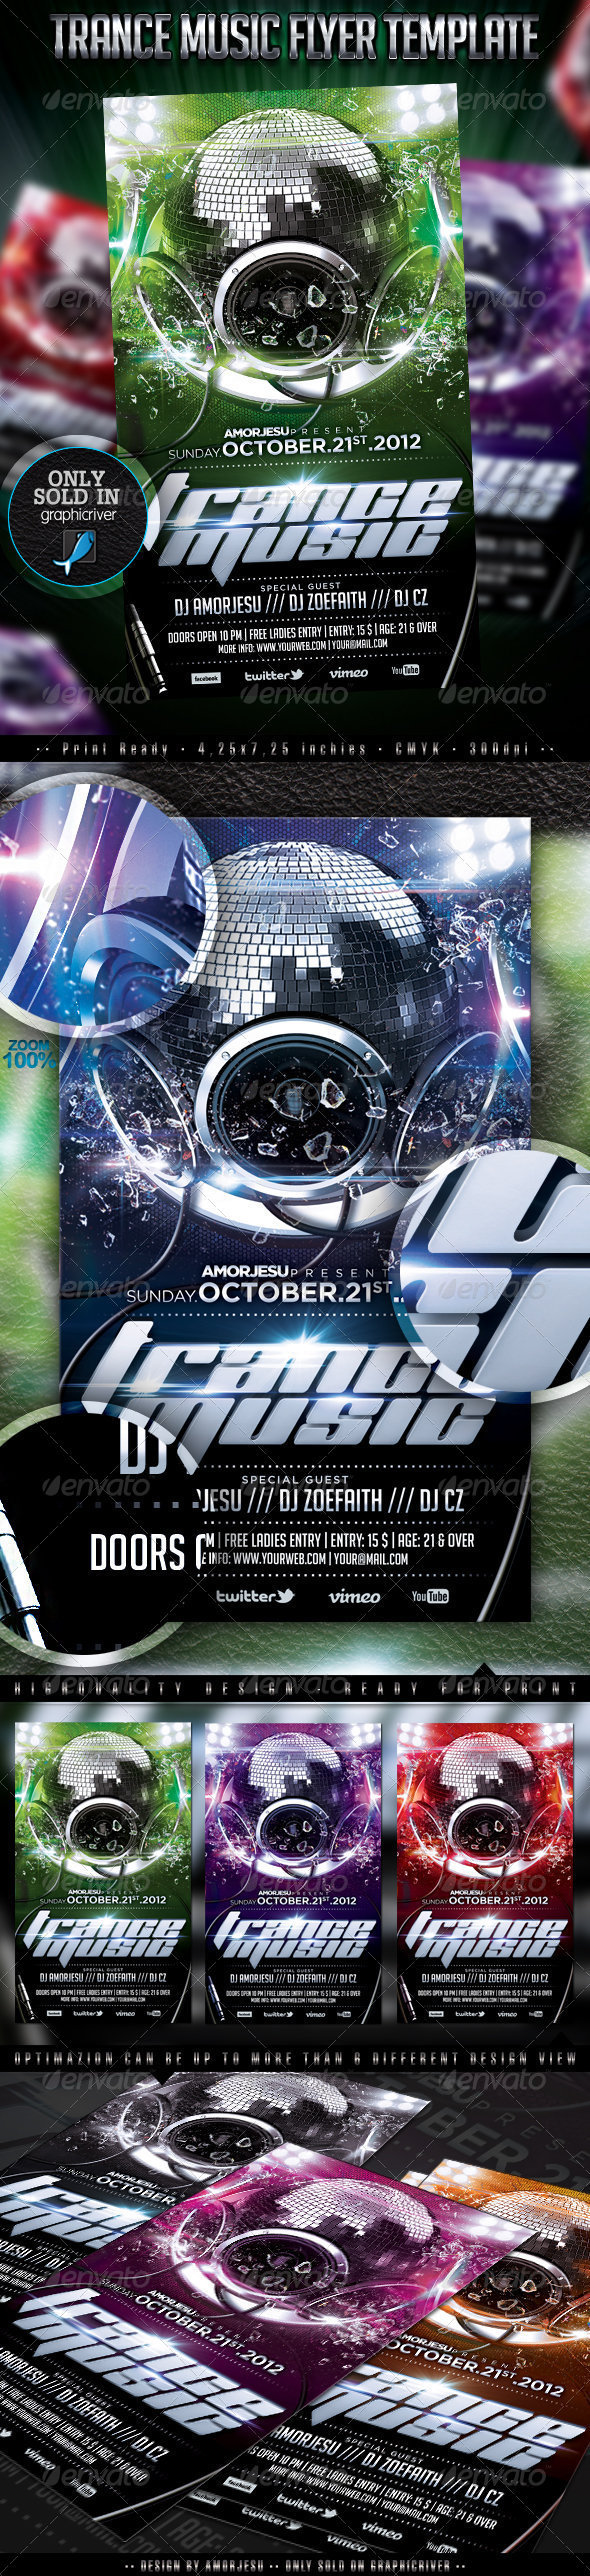 Trance Music Flyer Template - Events Flyers